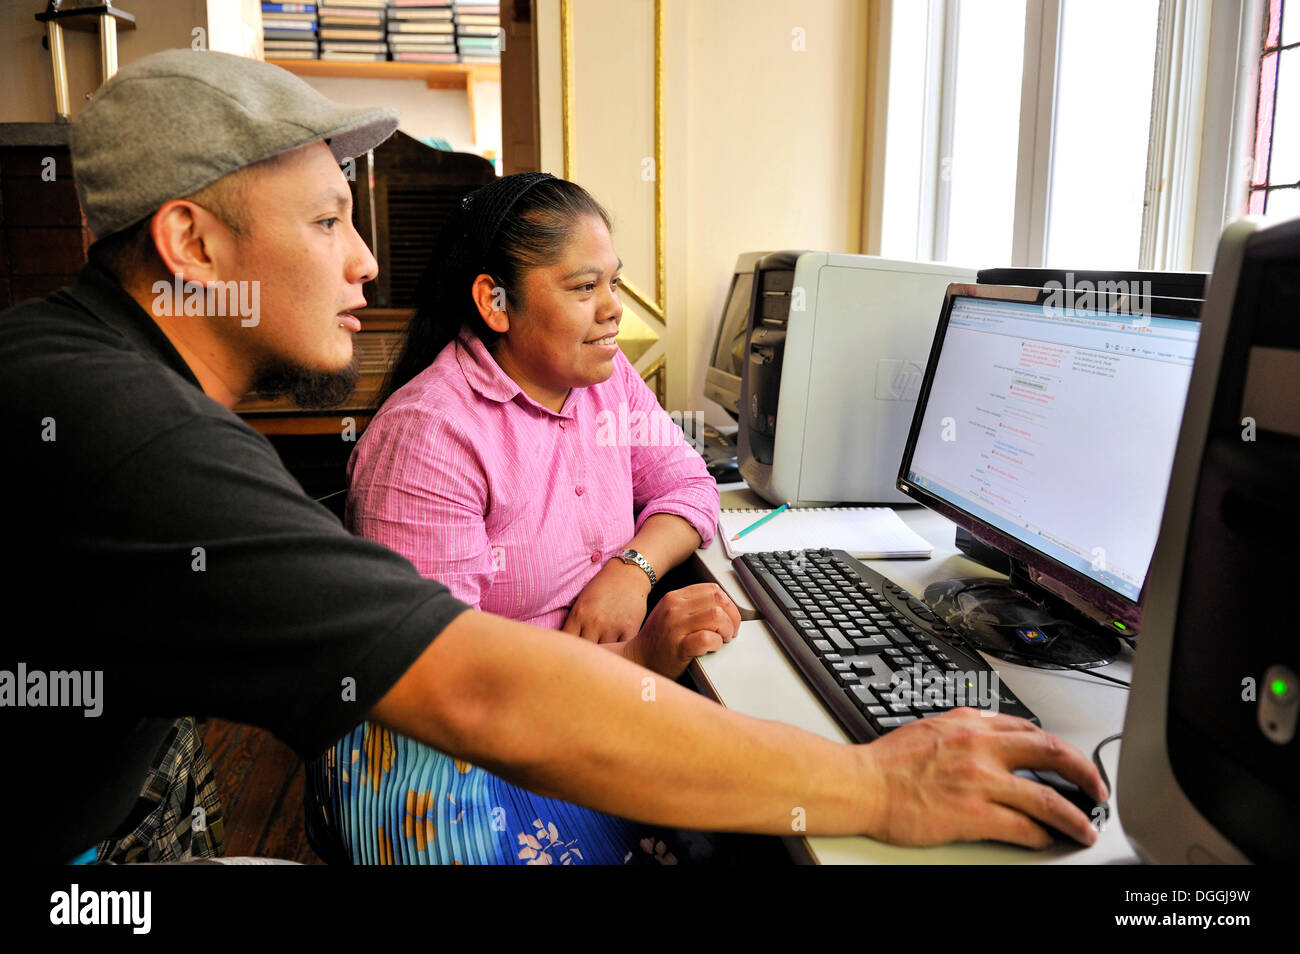 Indigenous woman attending a computer course at the non-governmental organization CIDES in Mexico City, Ciudad de Mexico, Mexico - Stock Image